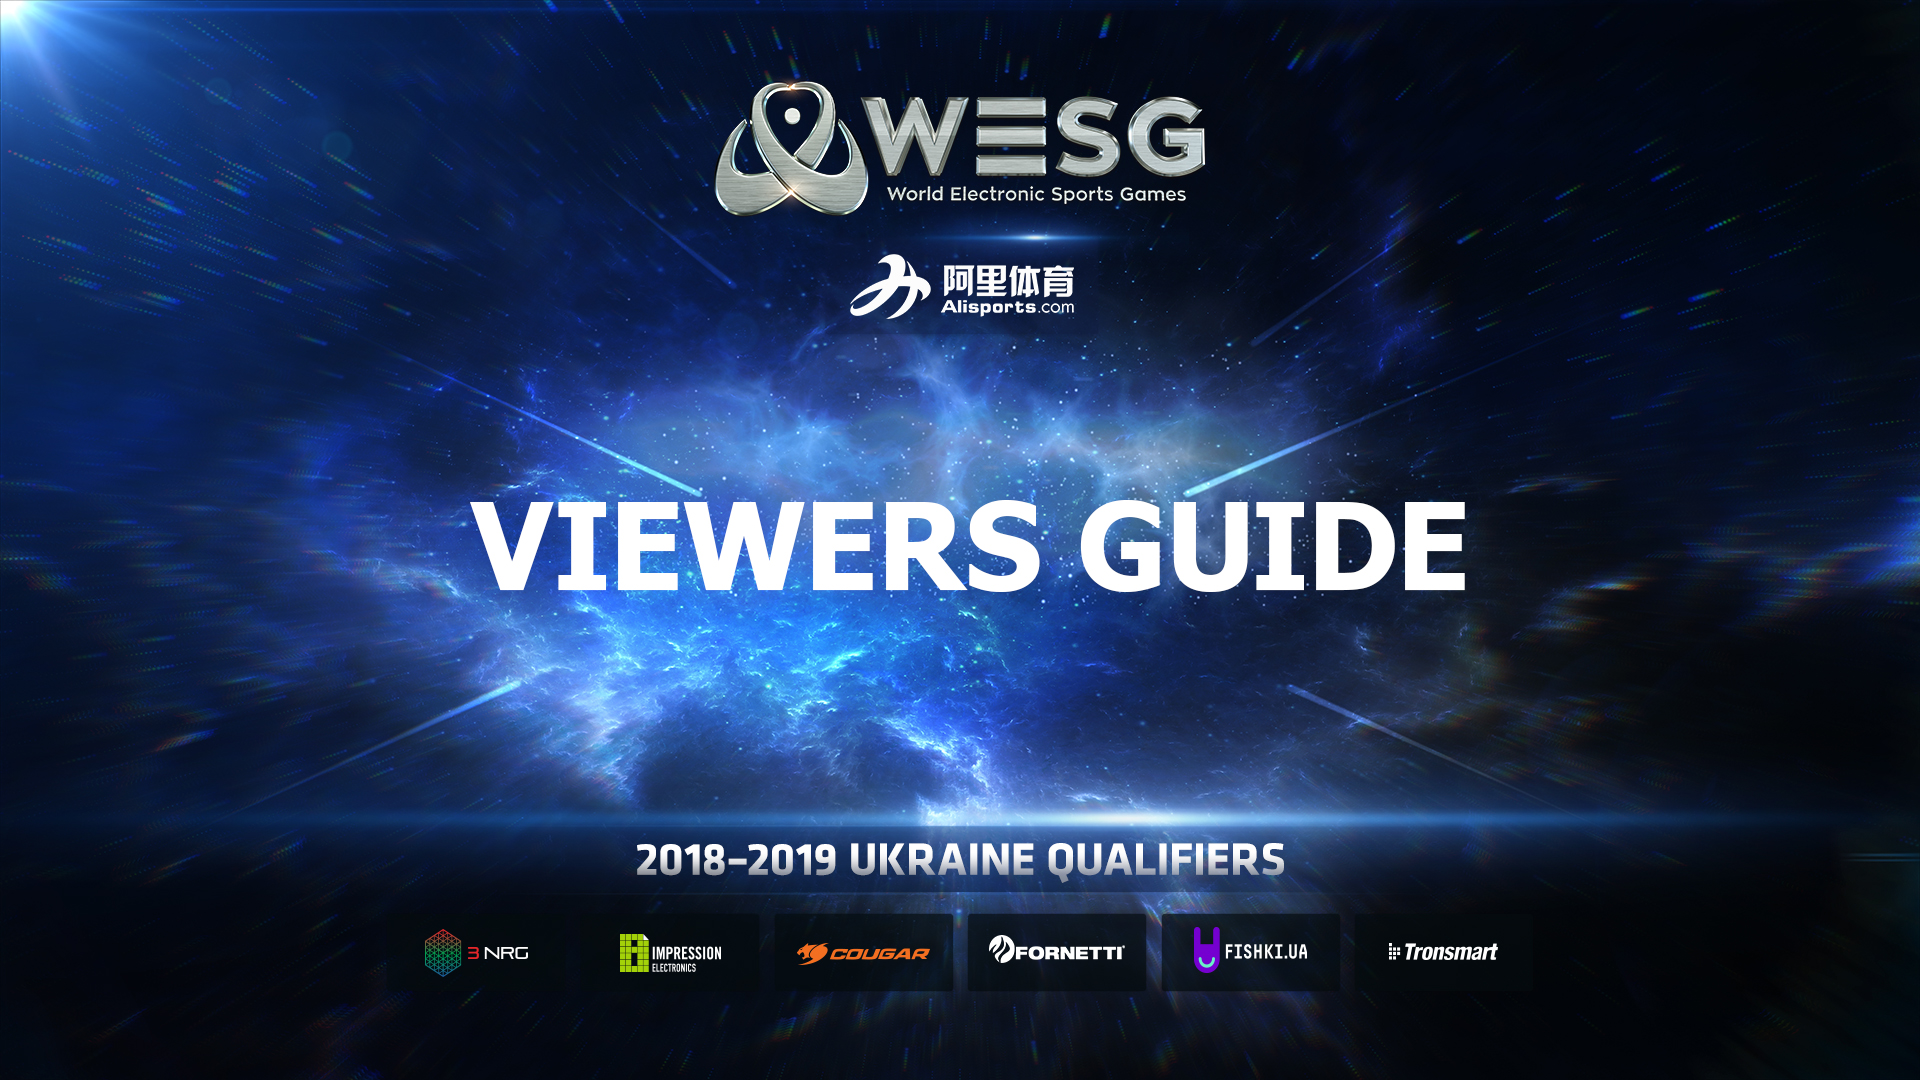 WESG 2018-2019 Ukraine Qualifiers: Schedule of the LAN